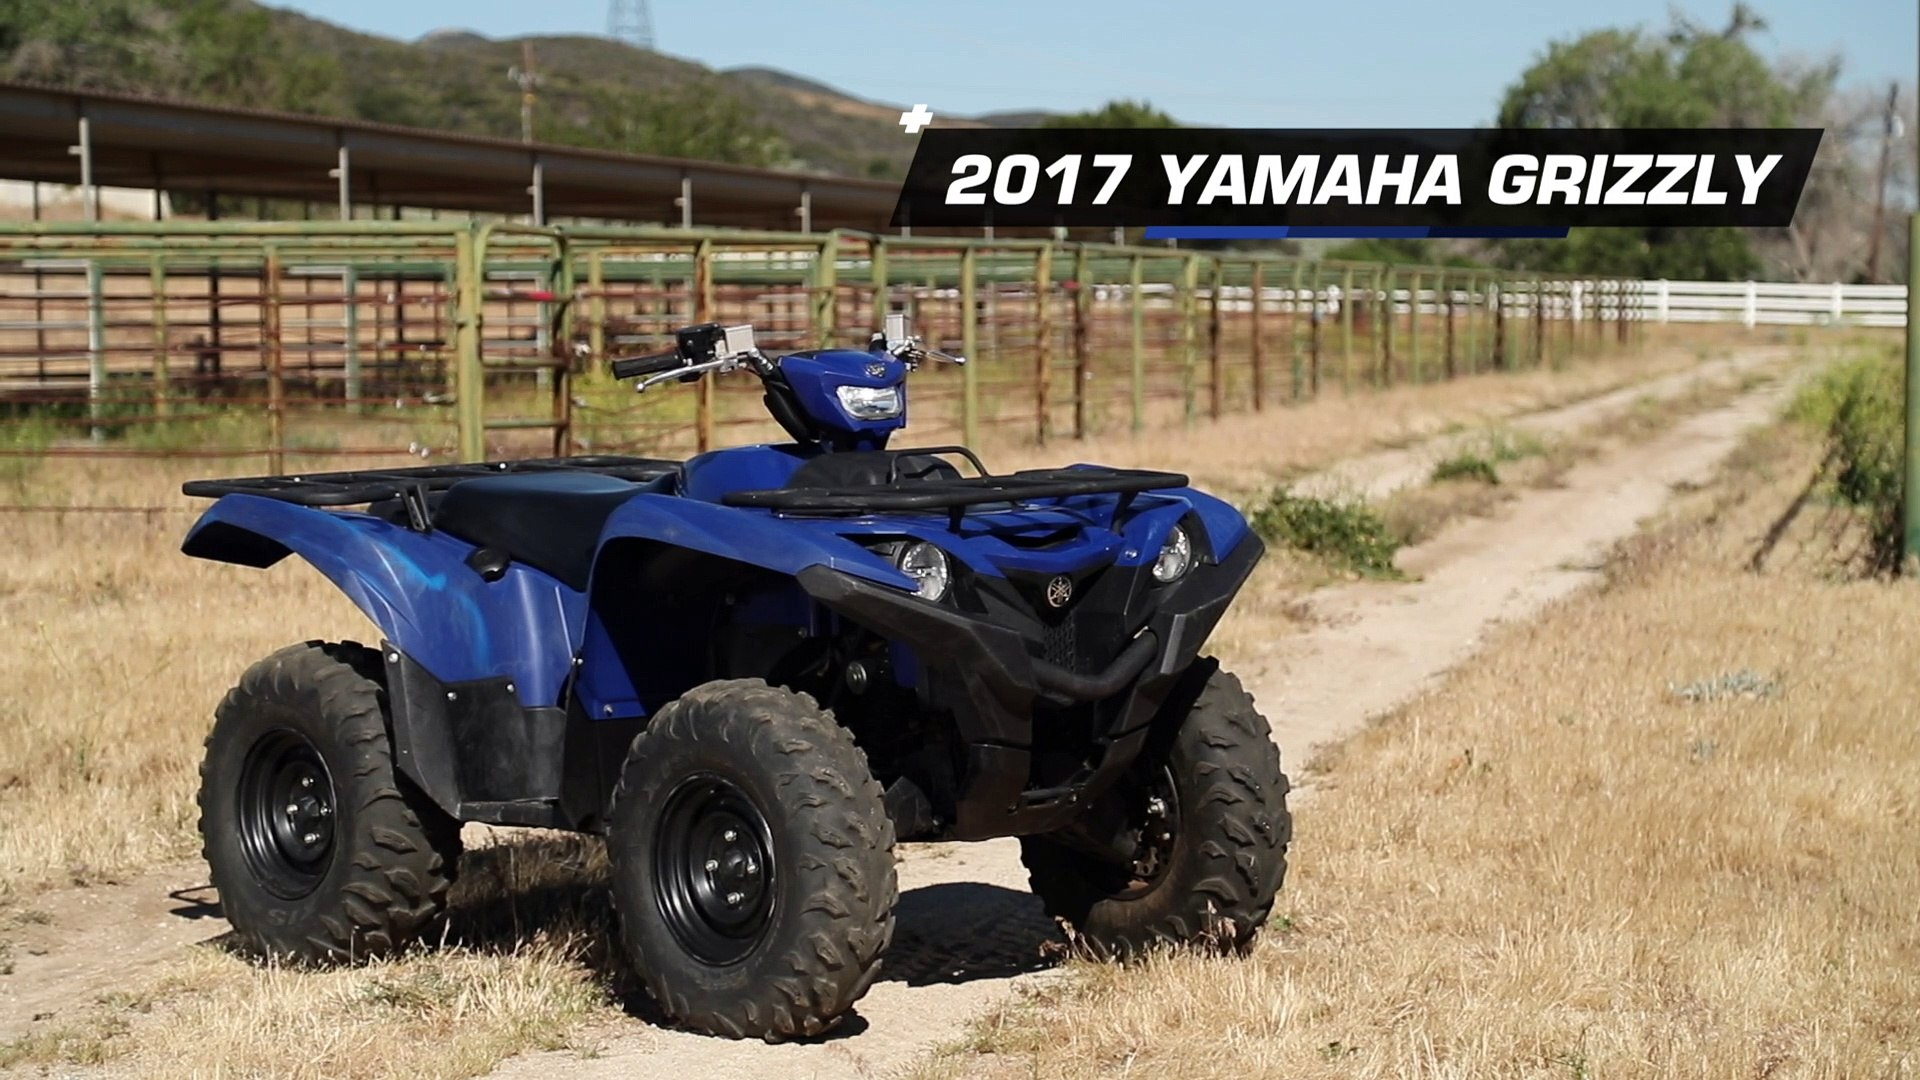 2017 Yamaha Grizzly >> 2017 Yamaha Grizzly 700 4x4 Eps Atv Review Video Dailymotion